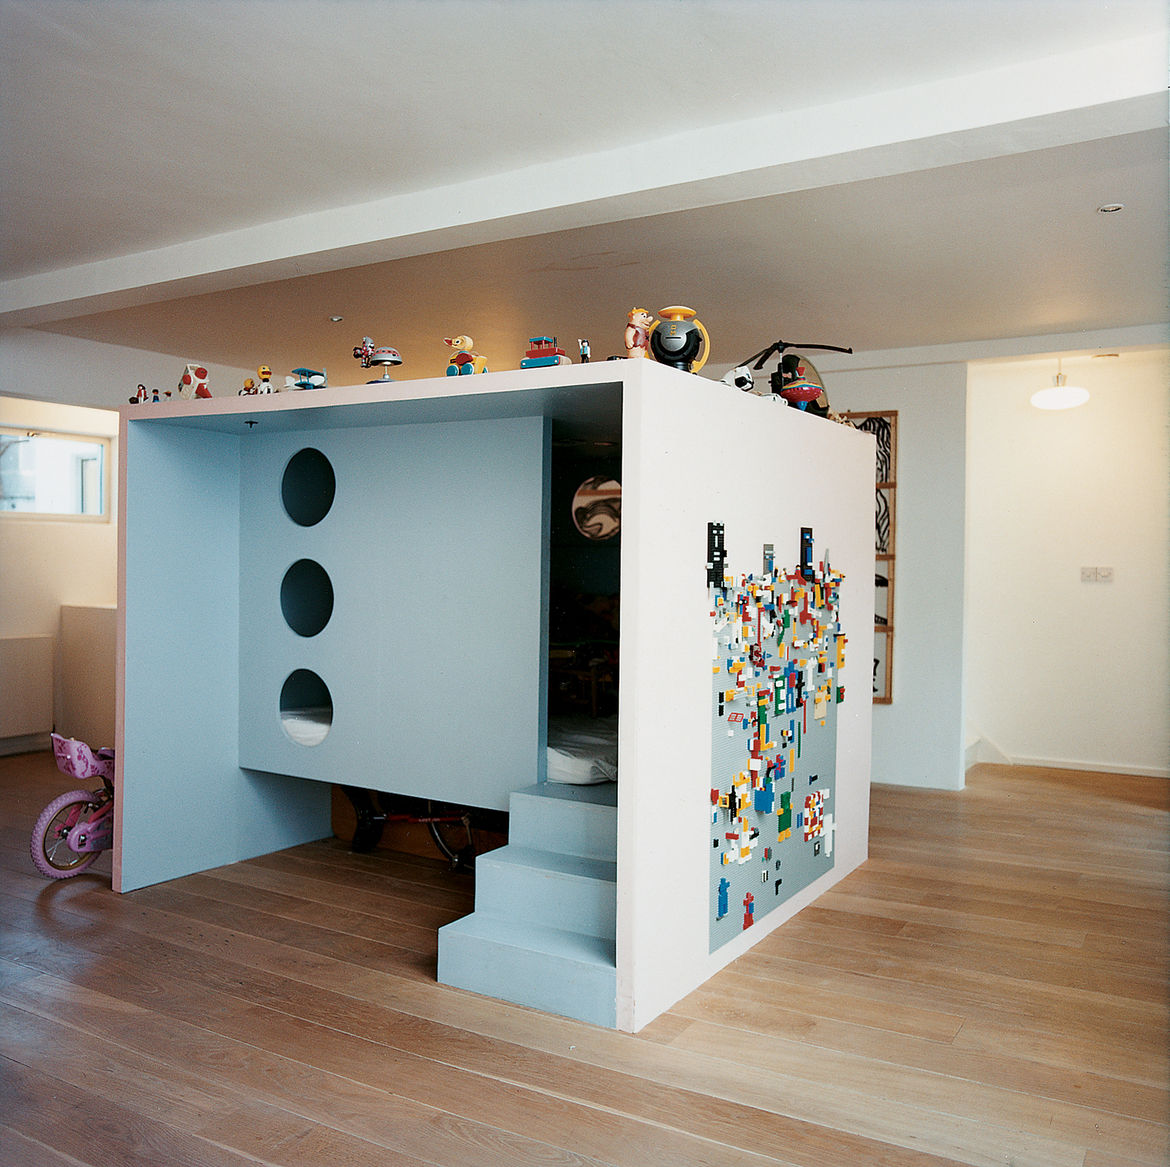 Danish furniture and product designer Nina Tolstrup, who works under the name Studiomama, conceived a huge, freestanding medium-density fiberboard (MDF) cube punctured with circular windows that acts as her children's playroom inside her London home. <a h